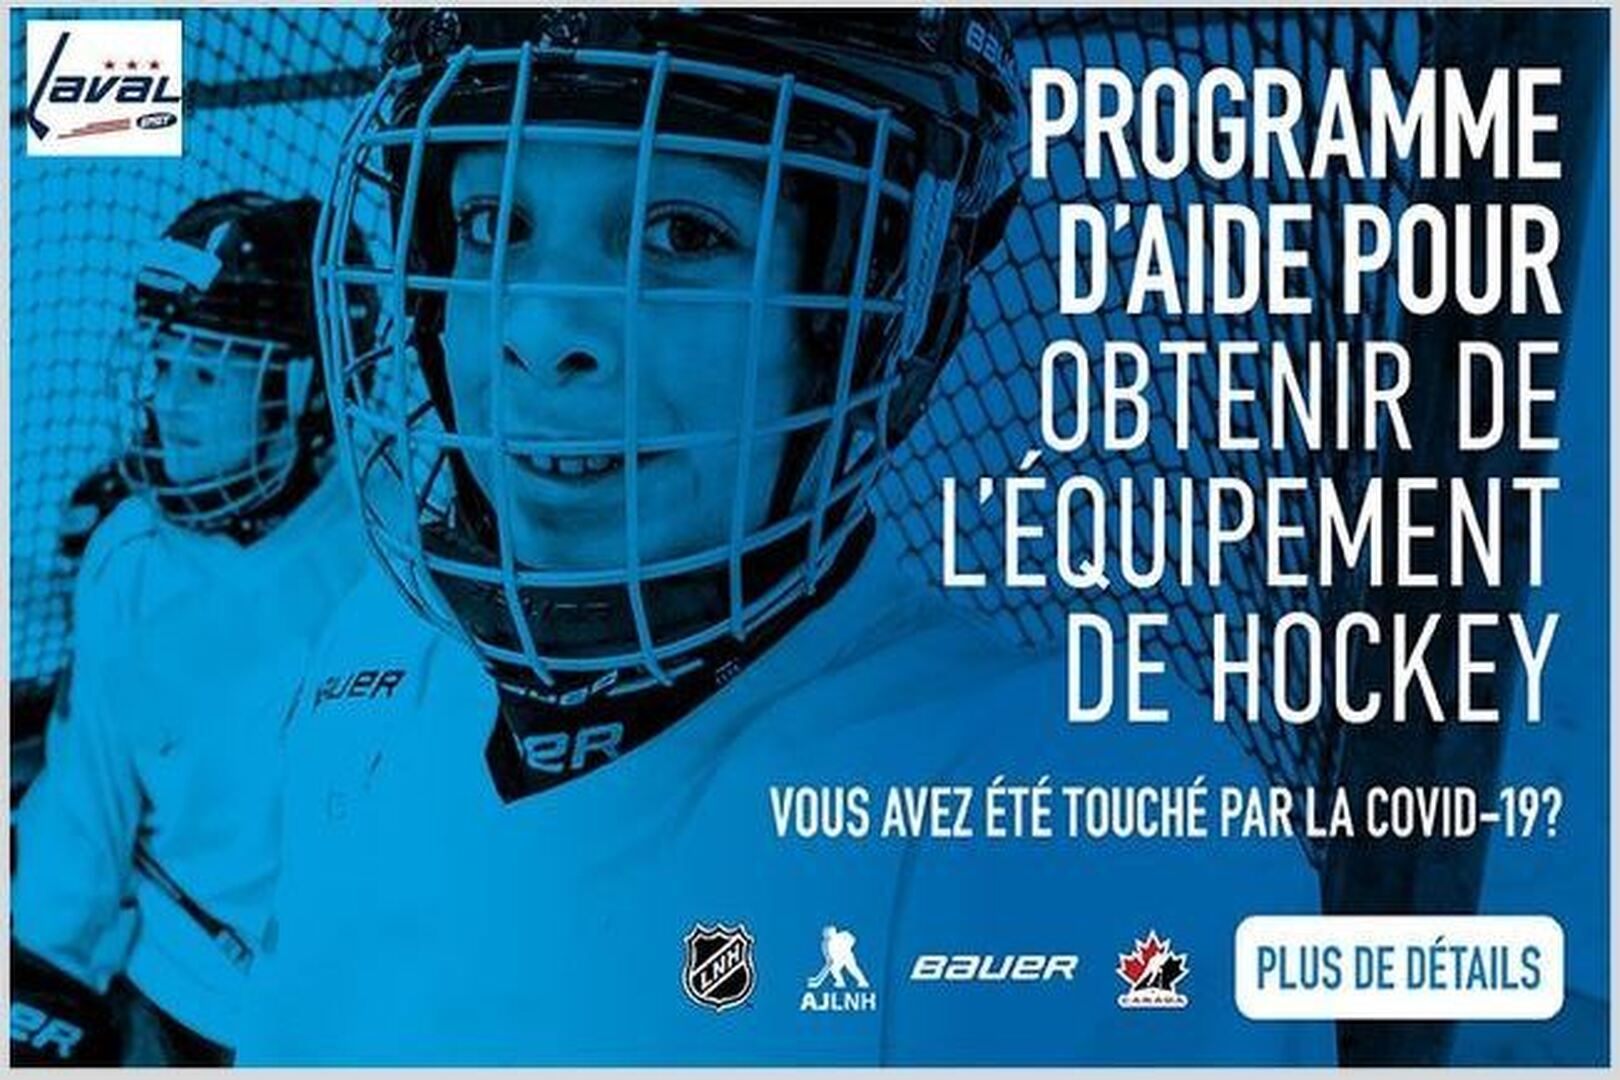 BAUER CANADA, PROGRAMME AIDE